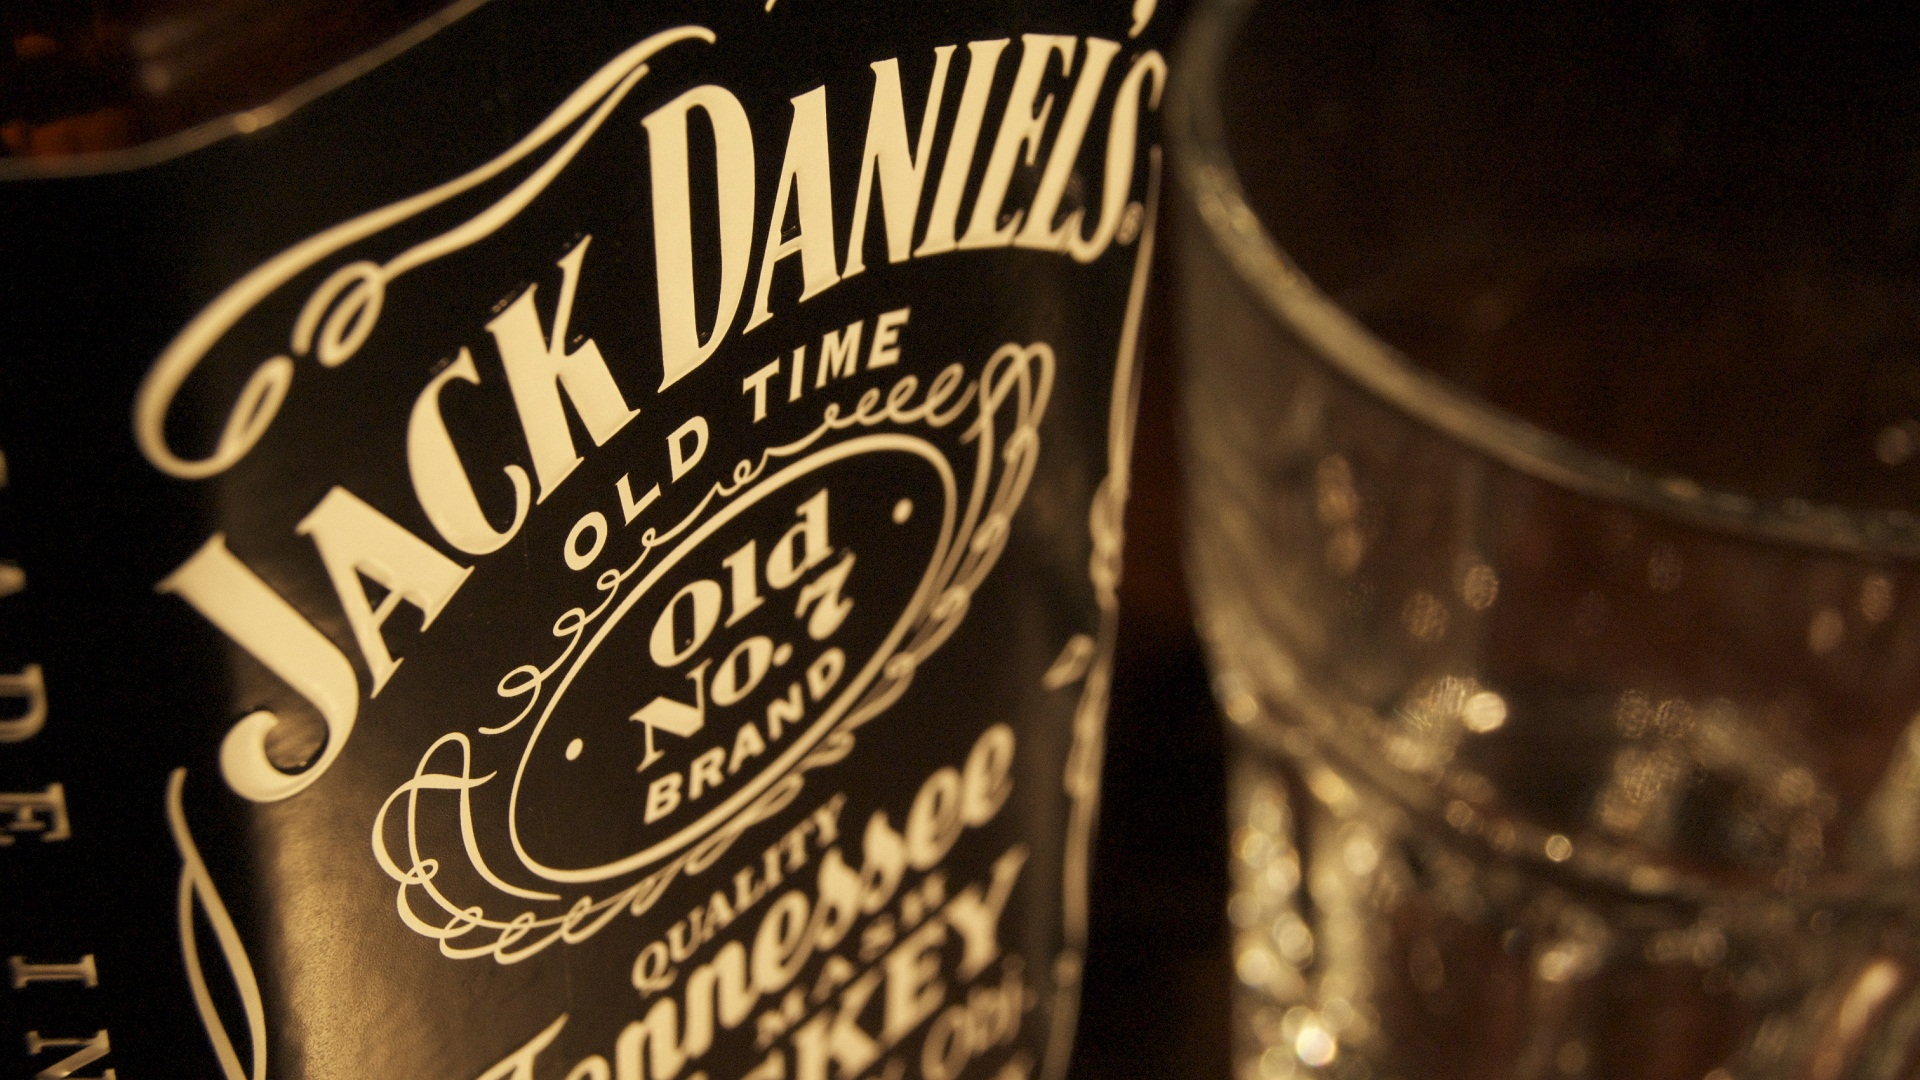 Jack daniels drink hd wallpapers photos pictures gallery download free hd wallpapers for Photos jack daniels